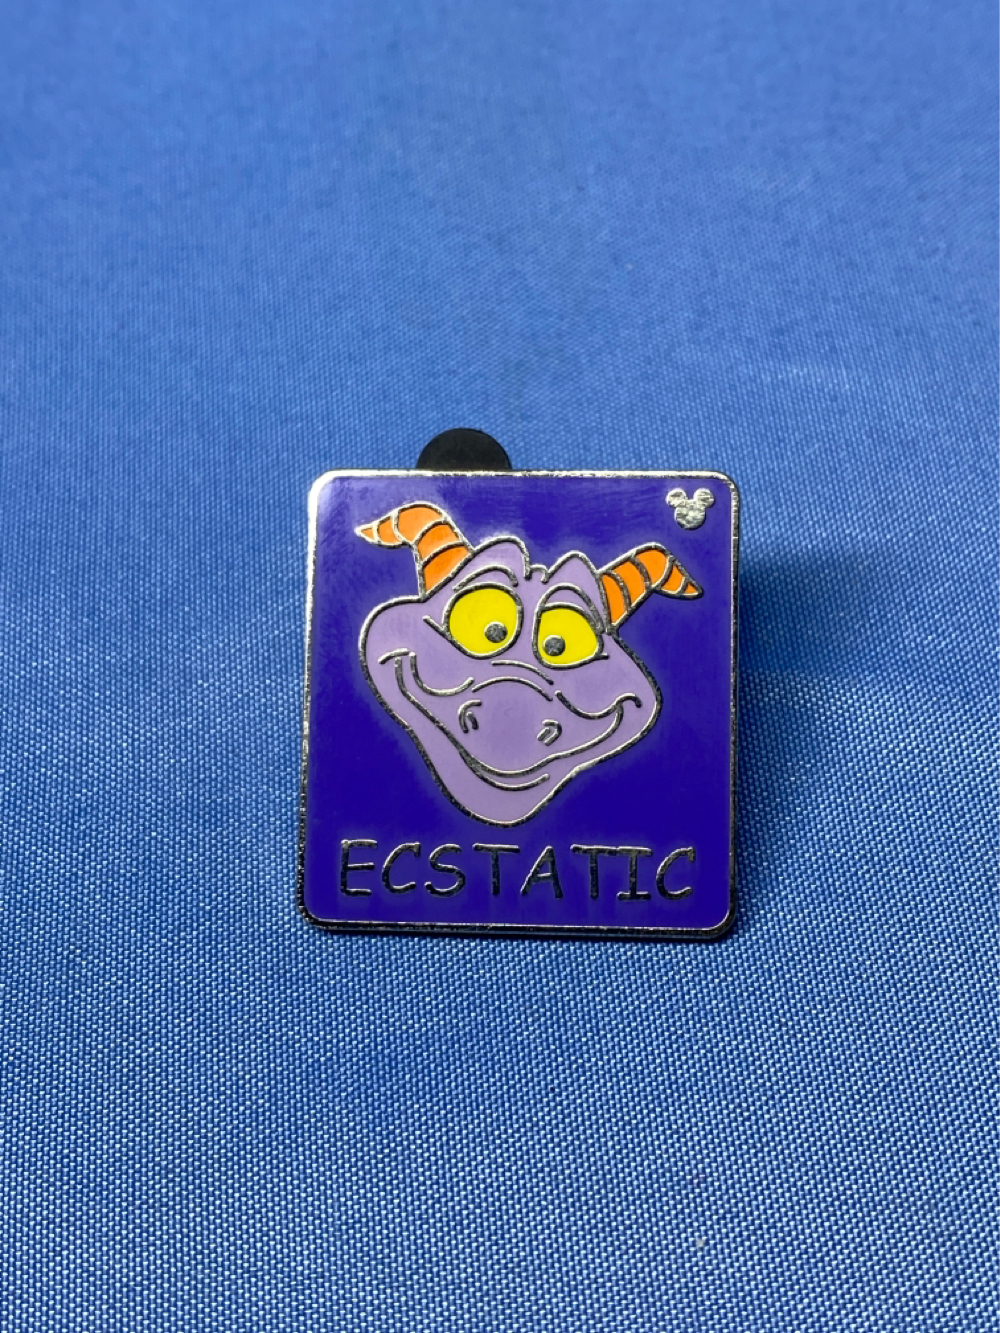 Primary image for WDW - Hidden Mickey 2007 Series II - Figment Emotions - Ecstatic Disney Pin